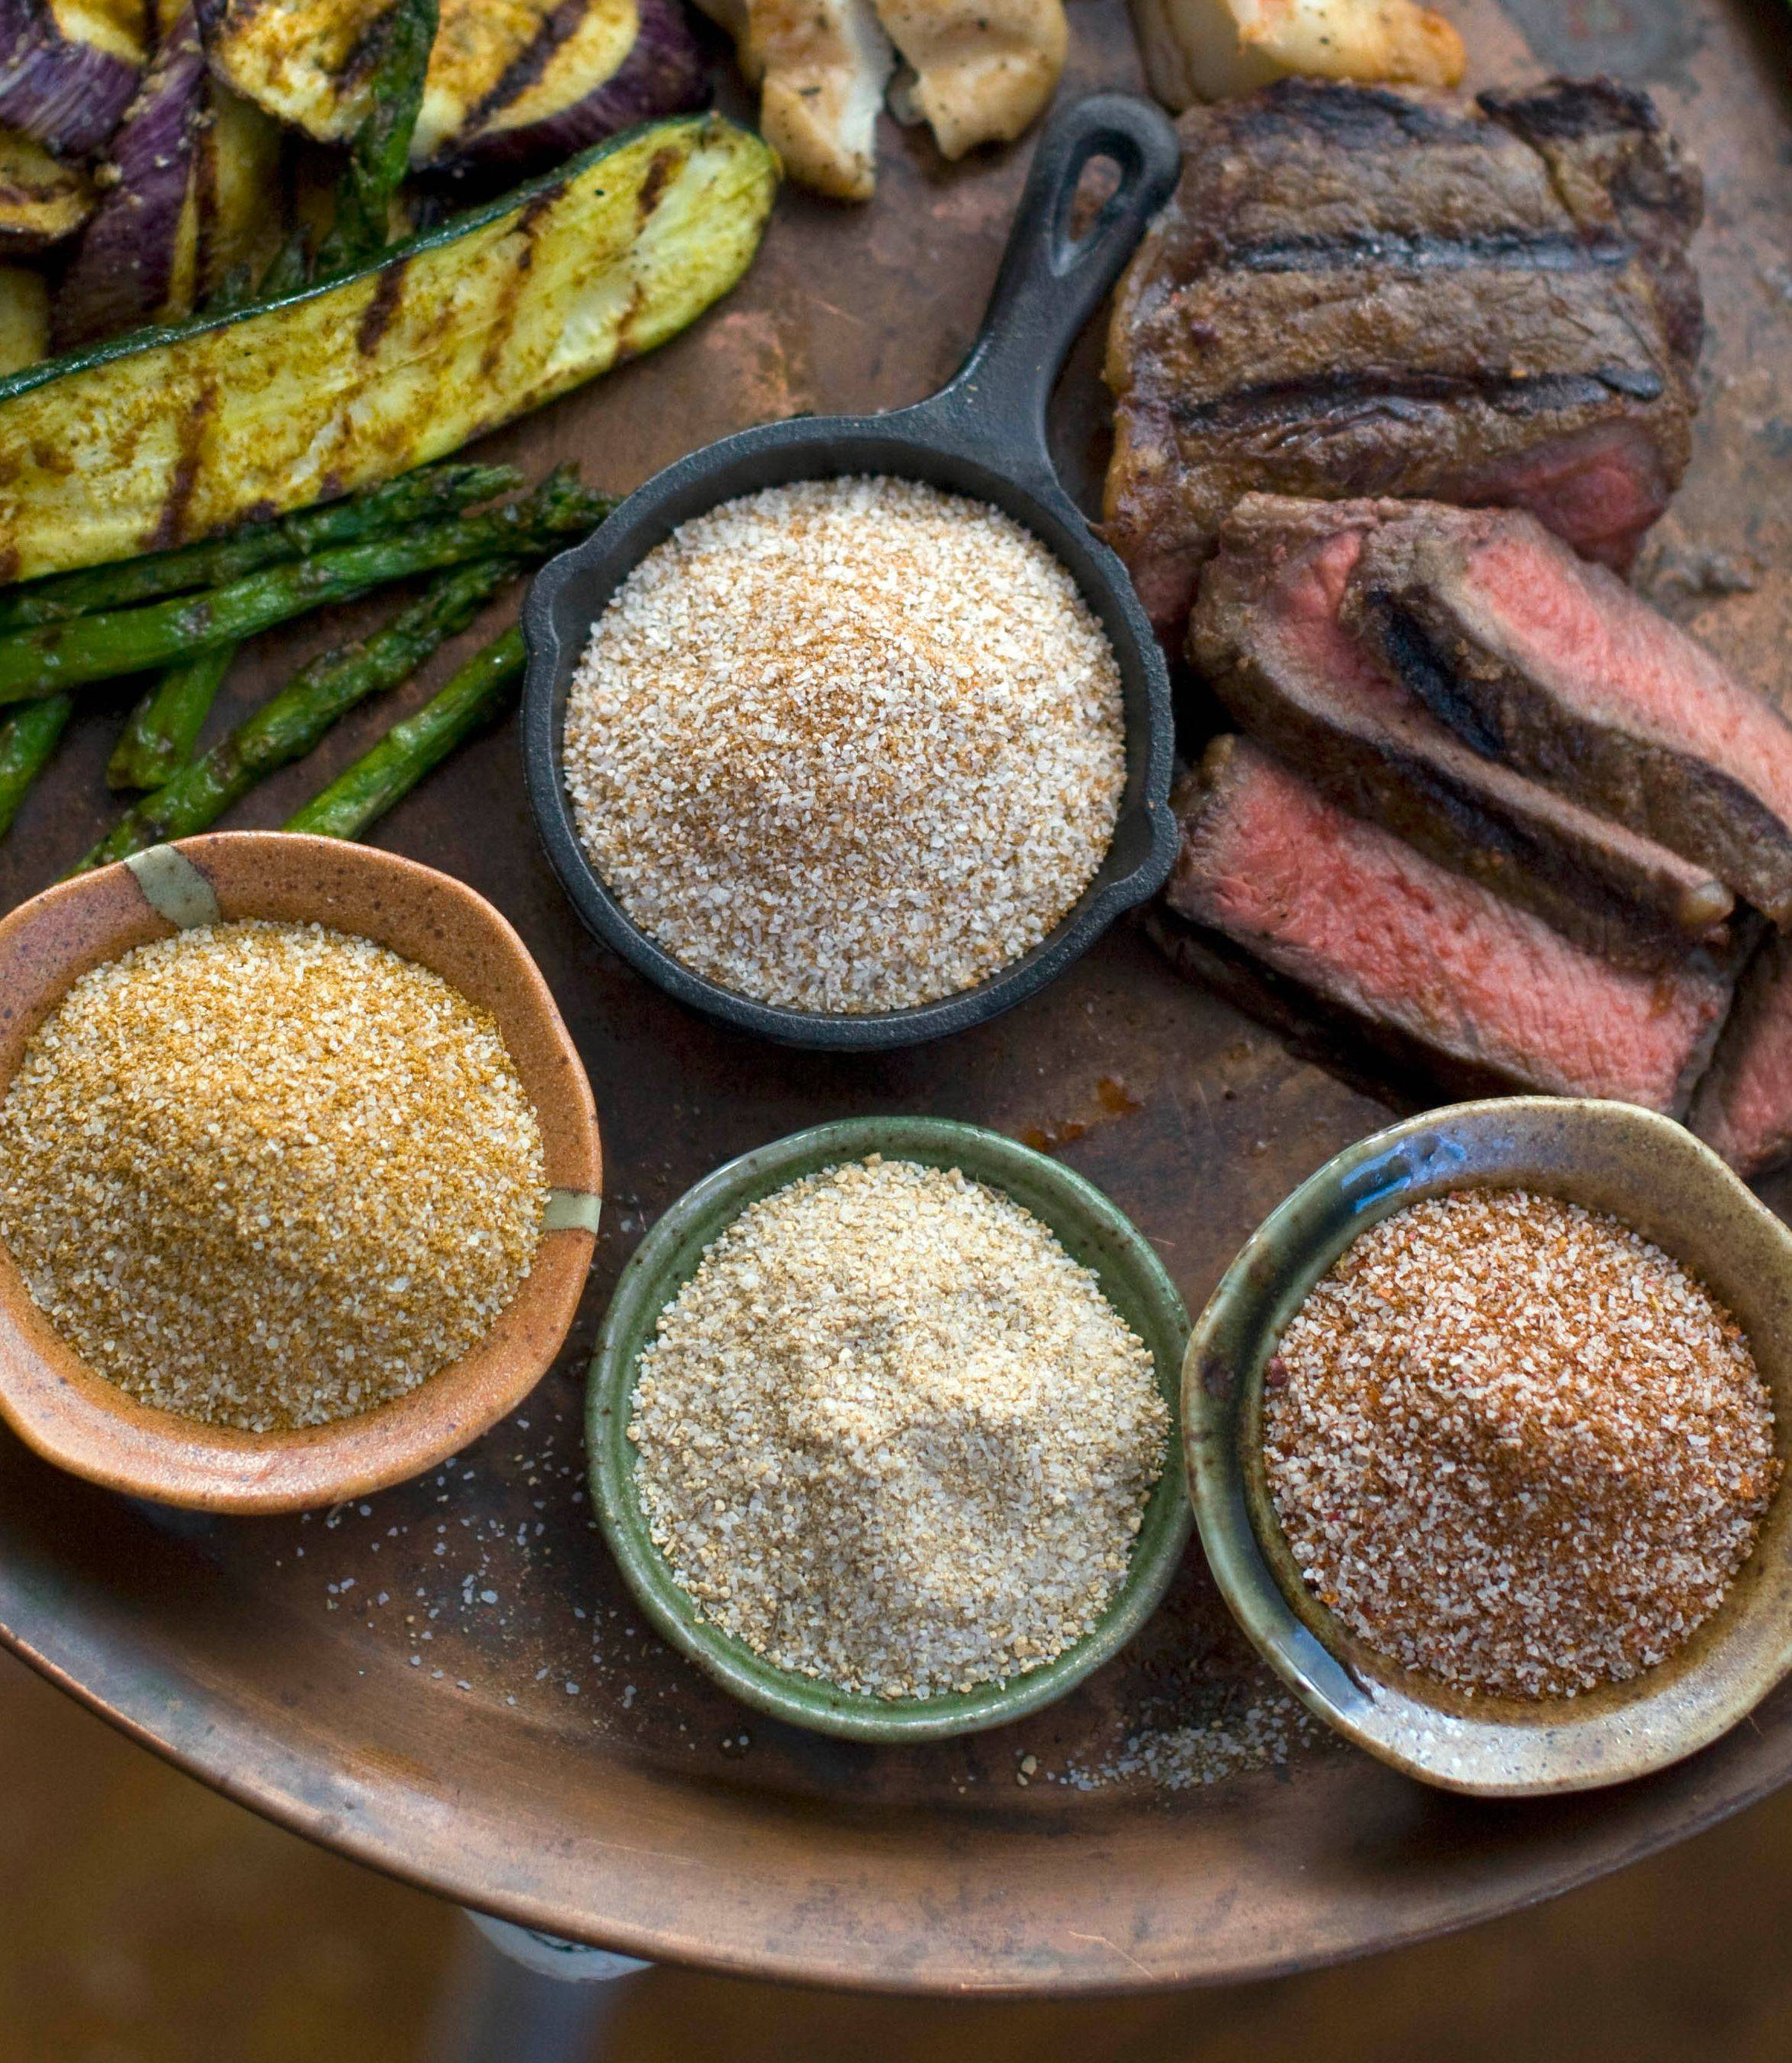 Spice and herb rubs are a quick and easy way to pump up the flavor of grilled foods.